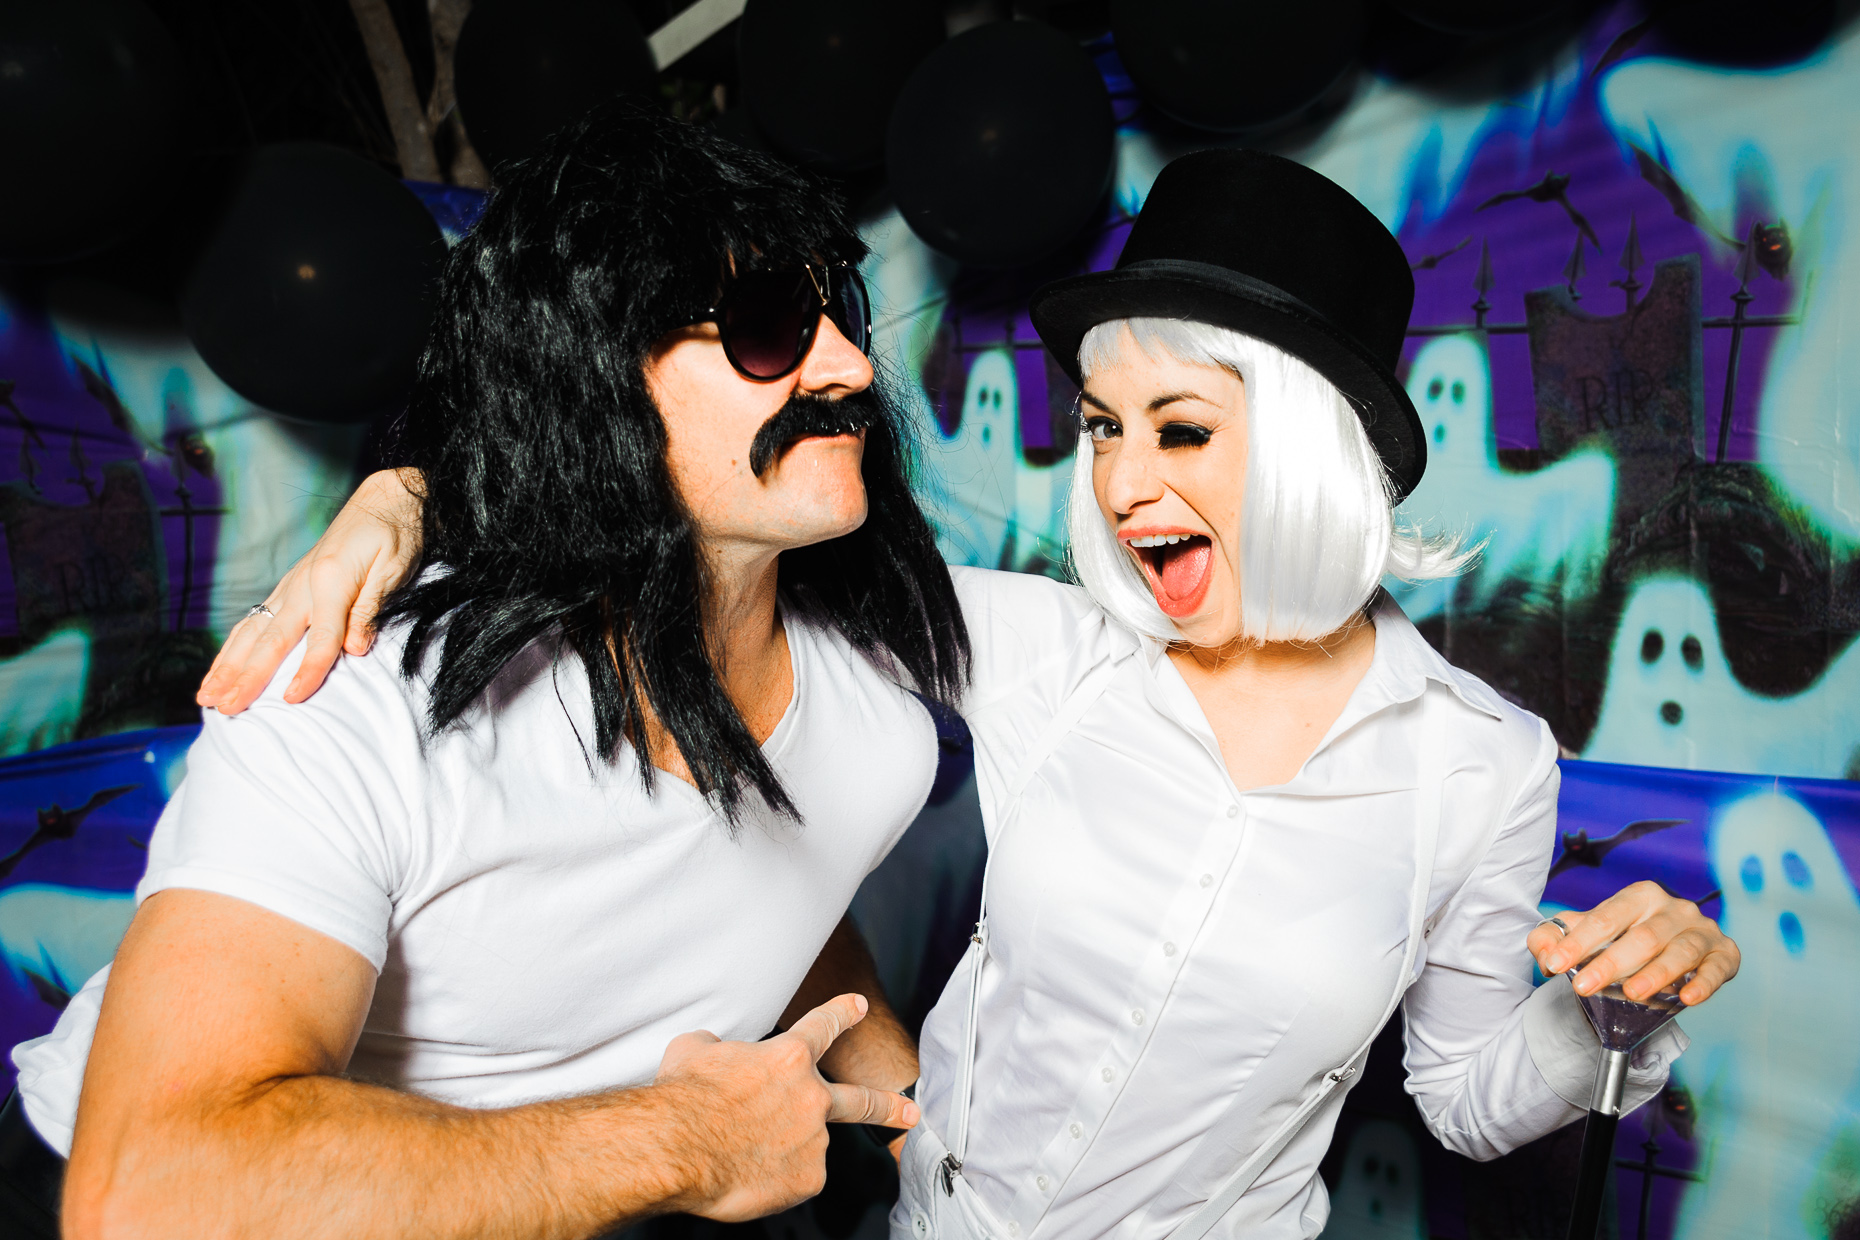 Halloween-Austin-Event-Commercial-Photographer-Photobooth.jpg